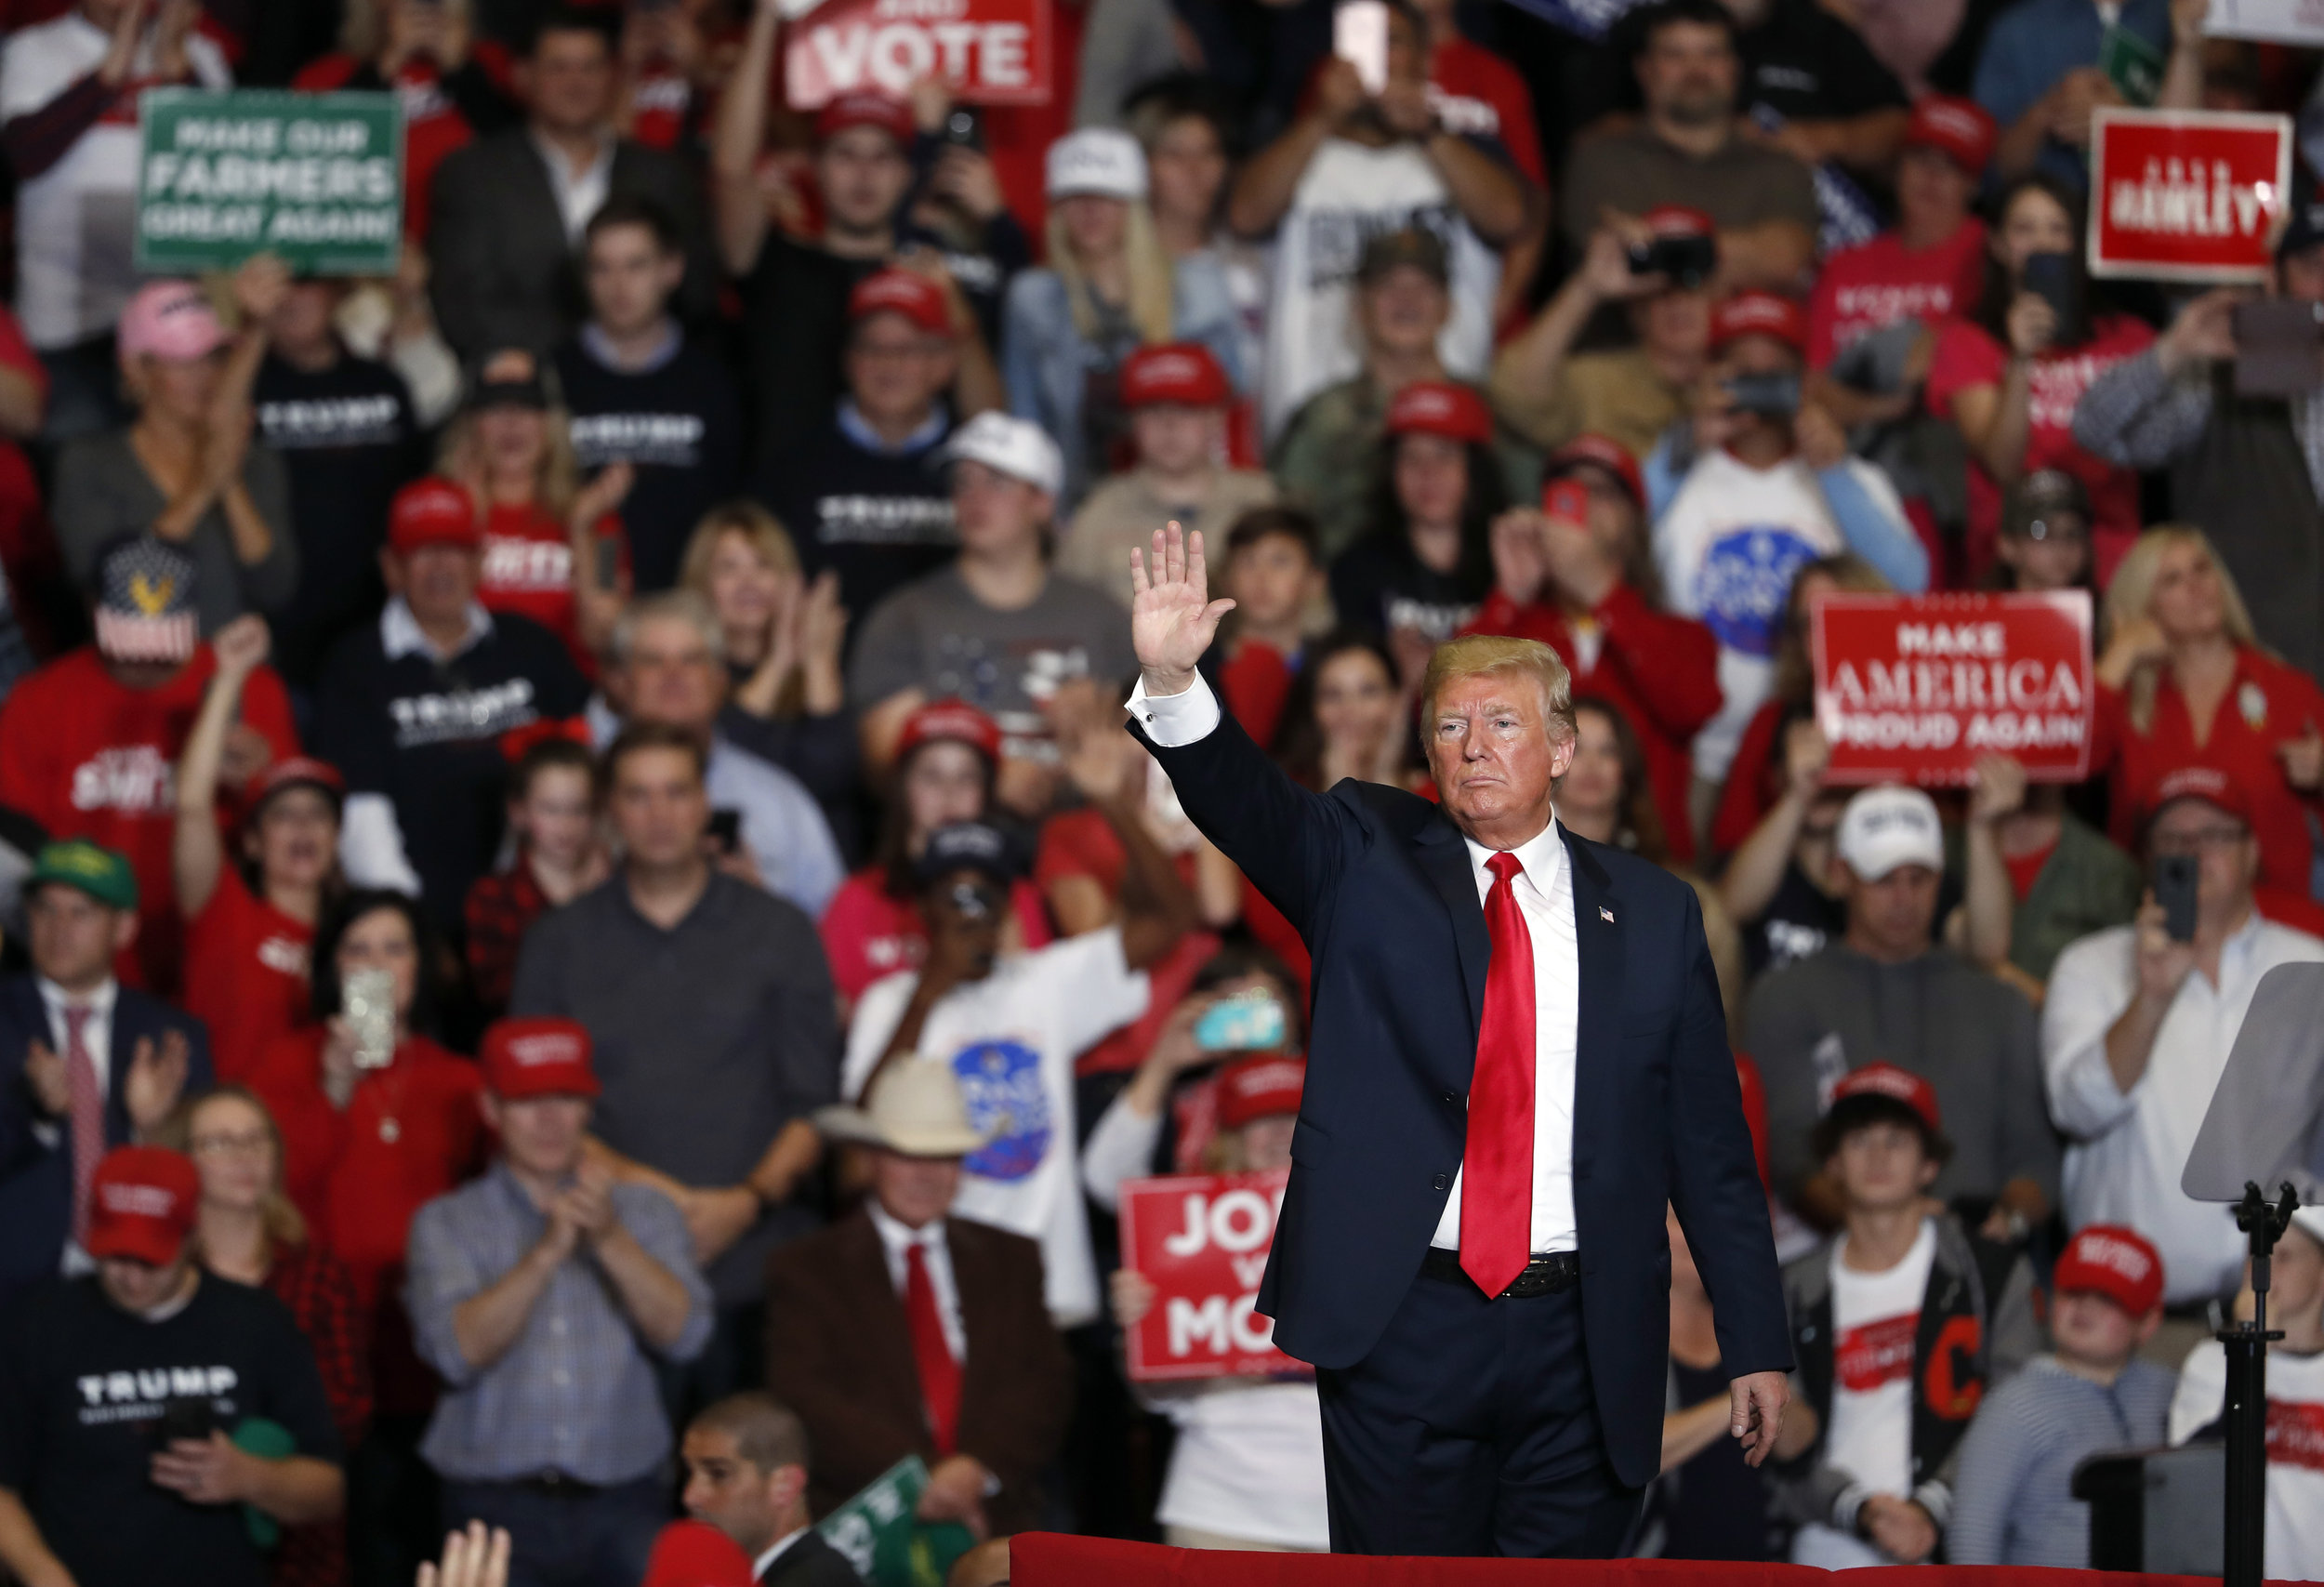 President Donald Trump waves to the crowd as he leaves the stage at the end of a campaign rally Monday, Nov. 5, 2018, in Cape Girardeau, Mo. (AP Photo/Jeff Roberson)